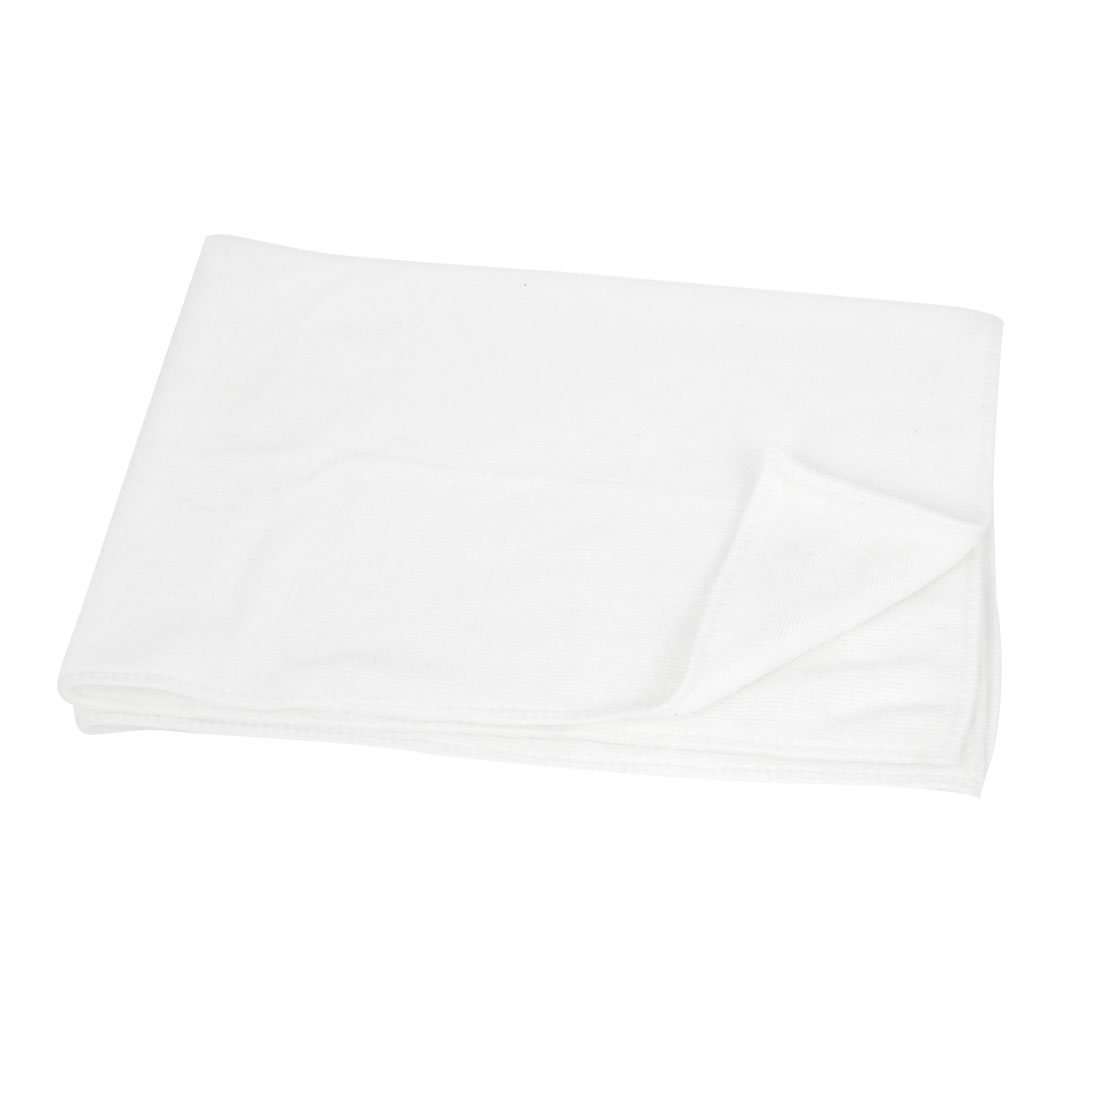 Auto Car White Cleaning Tool Window Glass Anti-fog Towel Cloth 40cm x 60cm